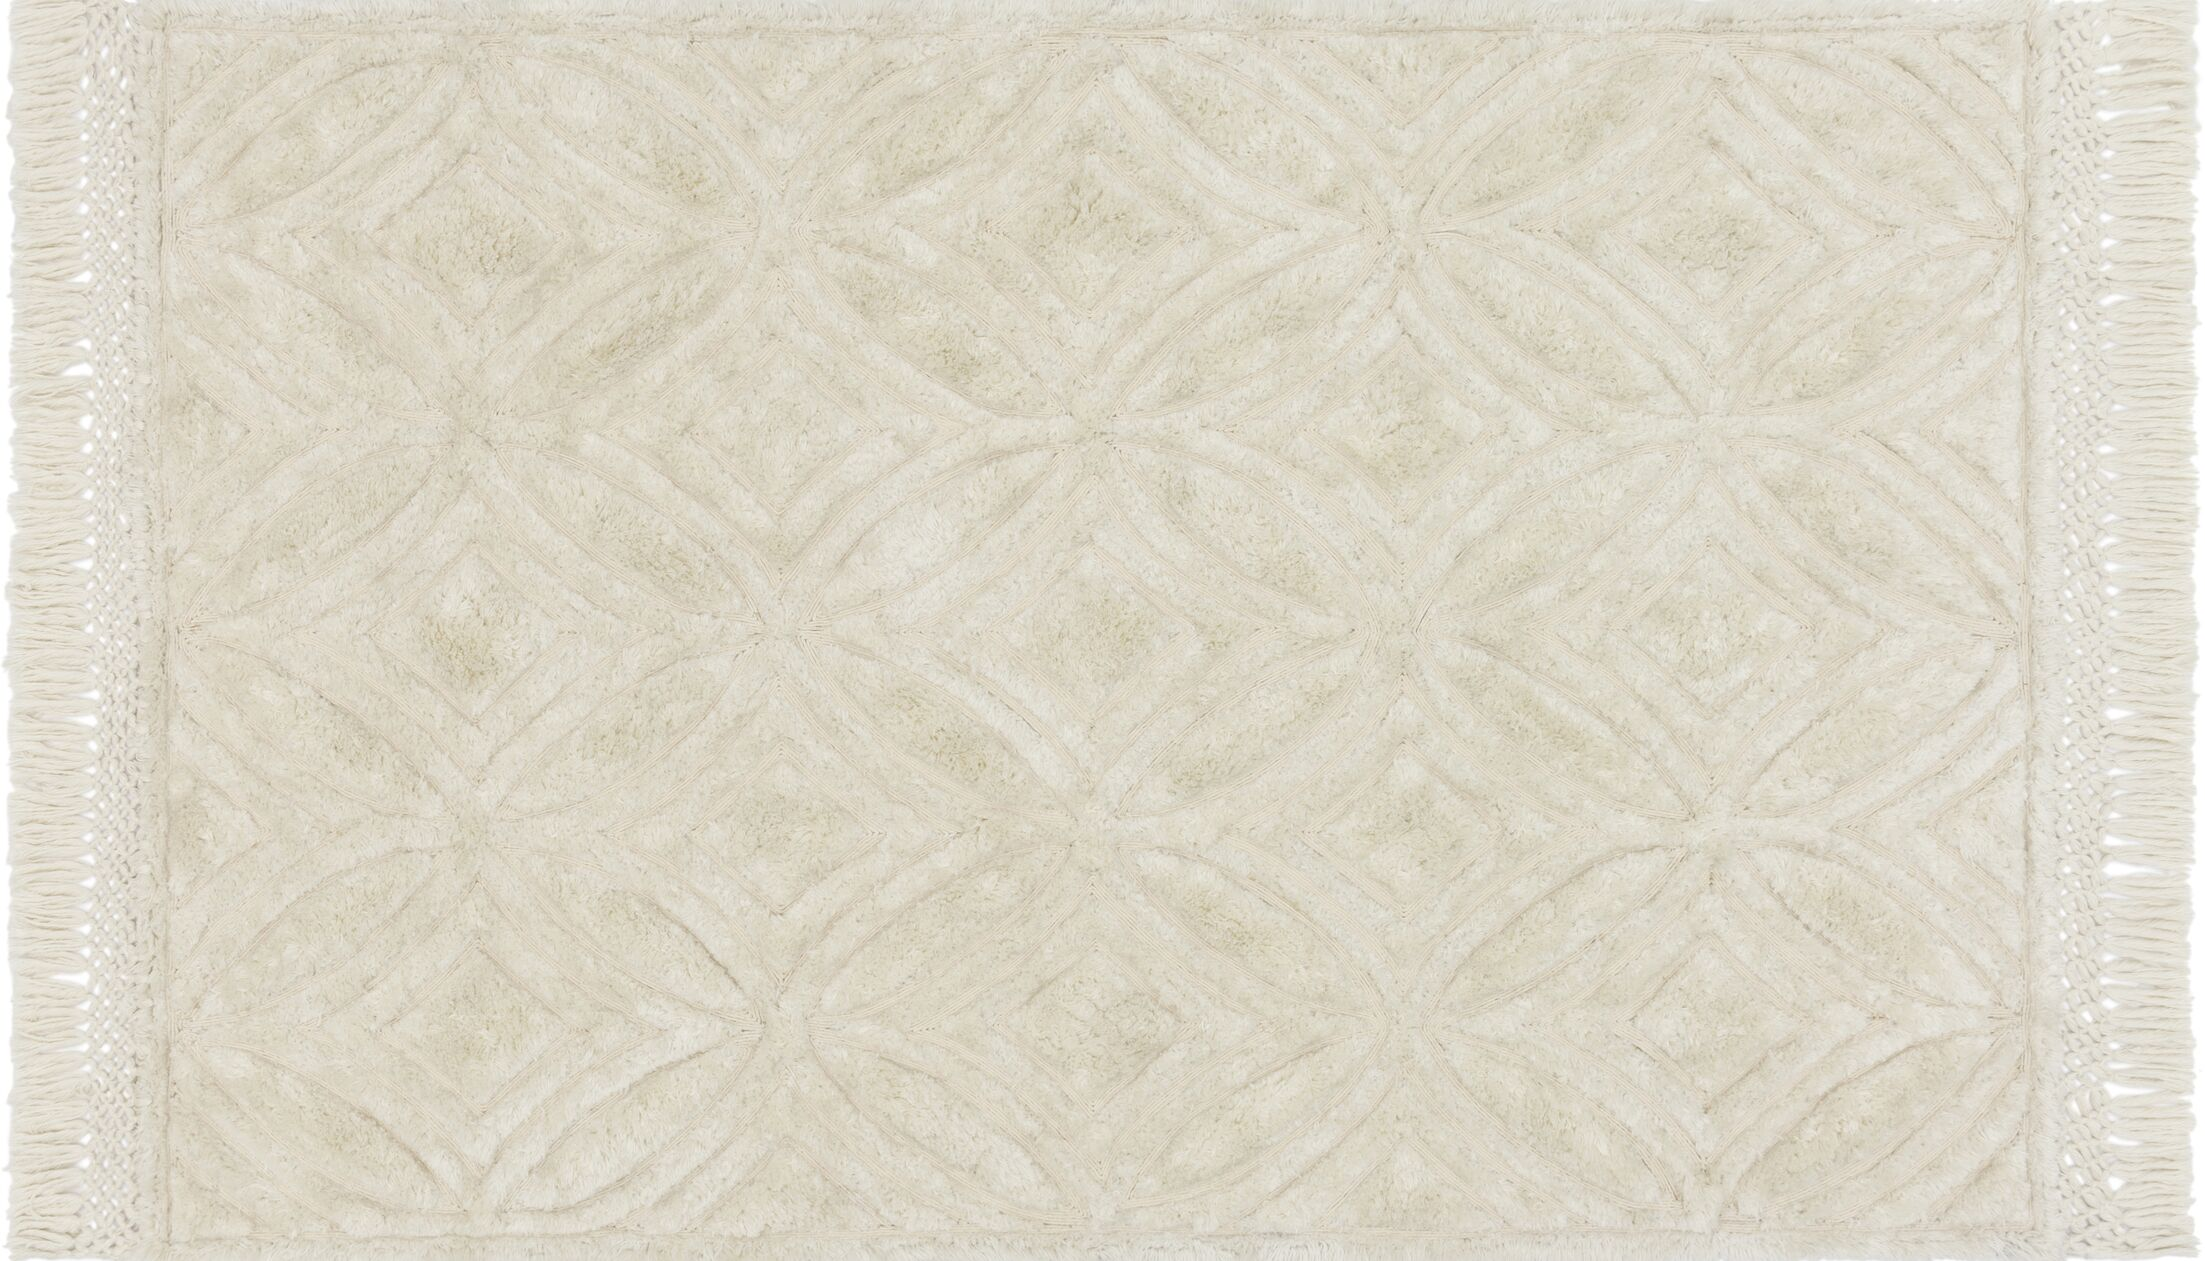 Werth Hand-Tufted Ivory Area Rug Rug Size: Rectangle 5' x 7'6